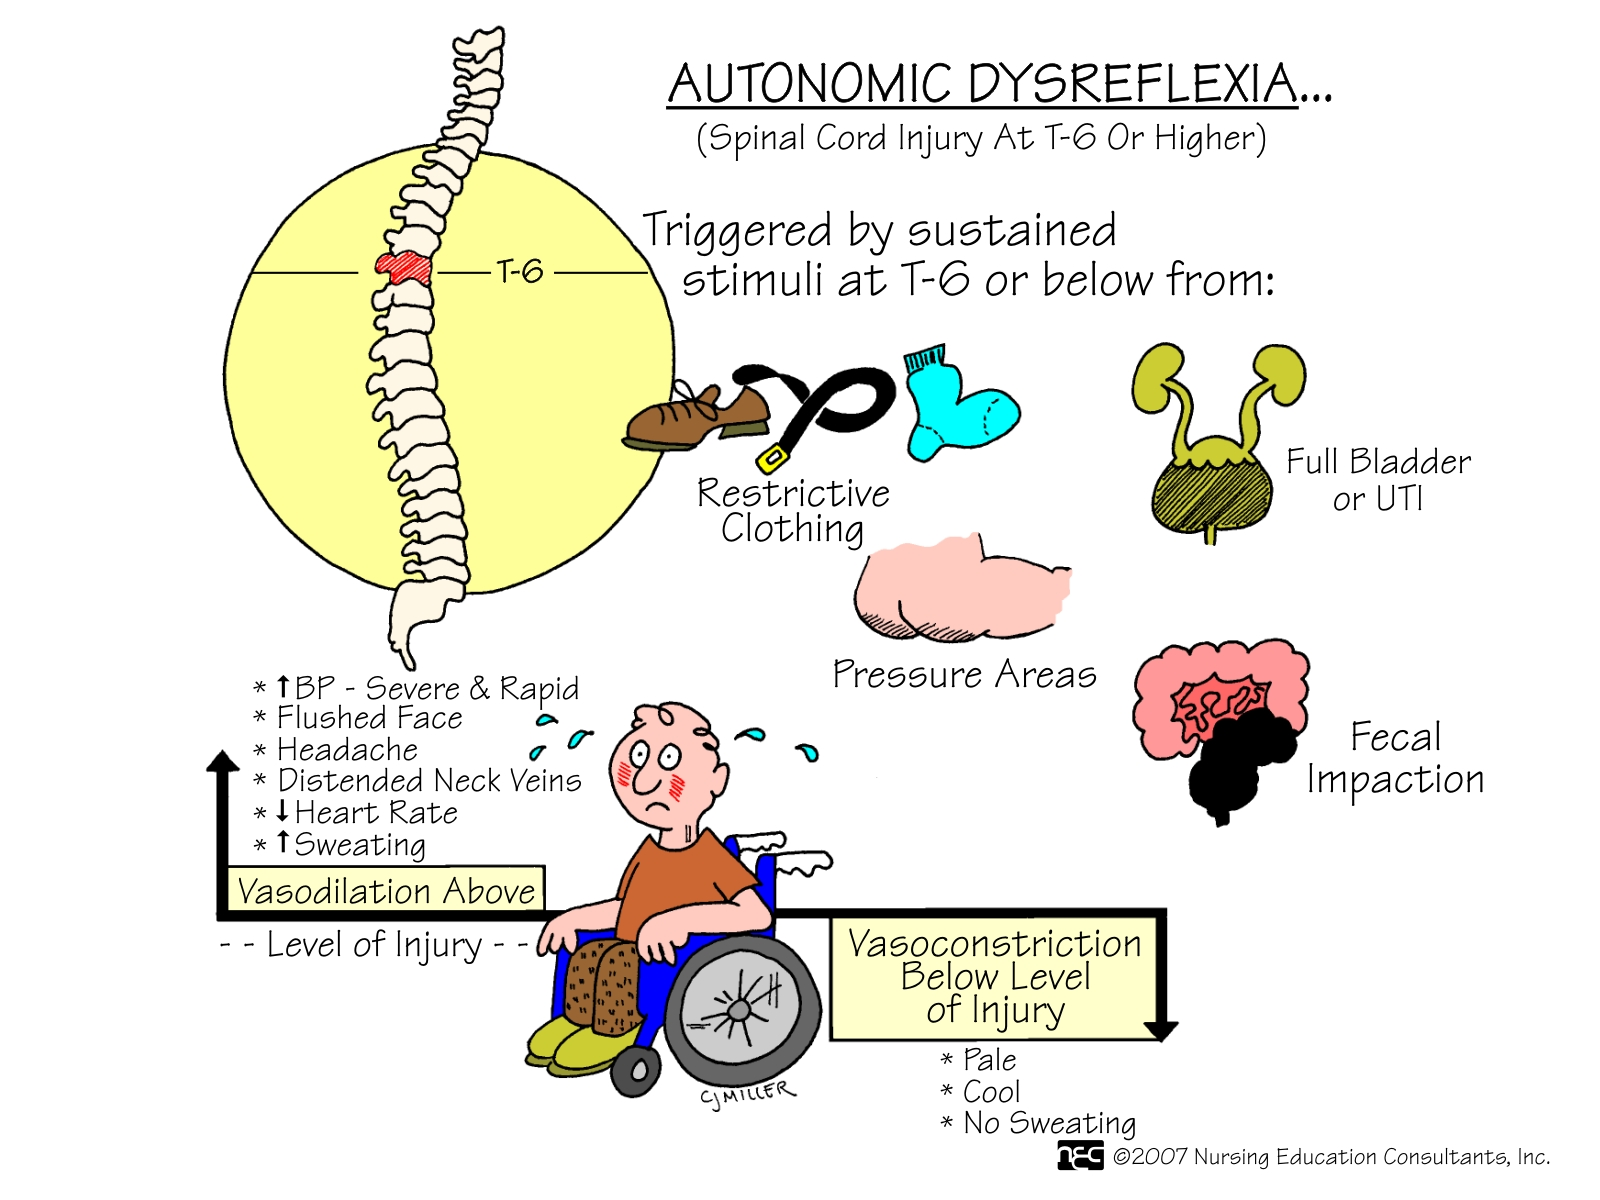 Hereditary Sensory Autonomic Neuropathy